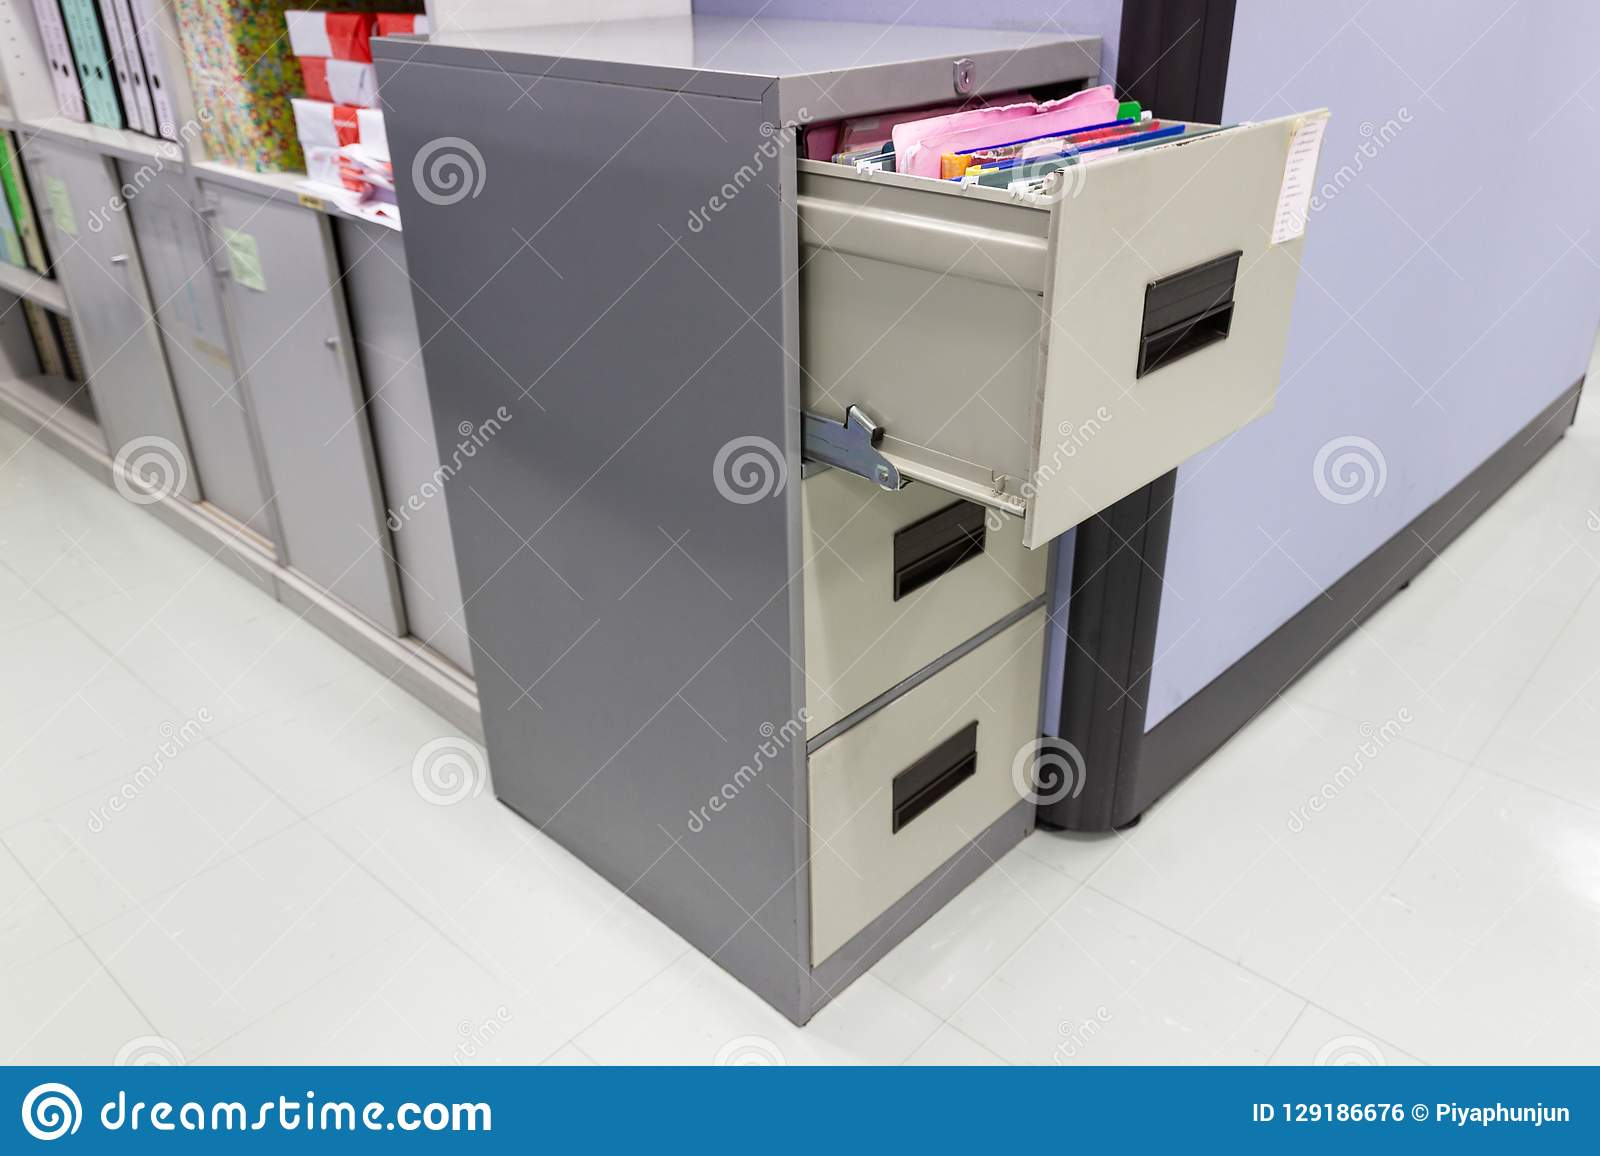 File folder documents In a file cabinet retention